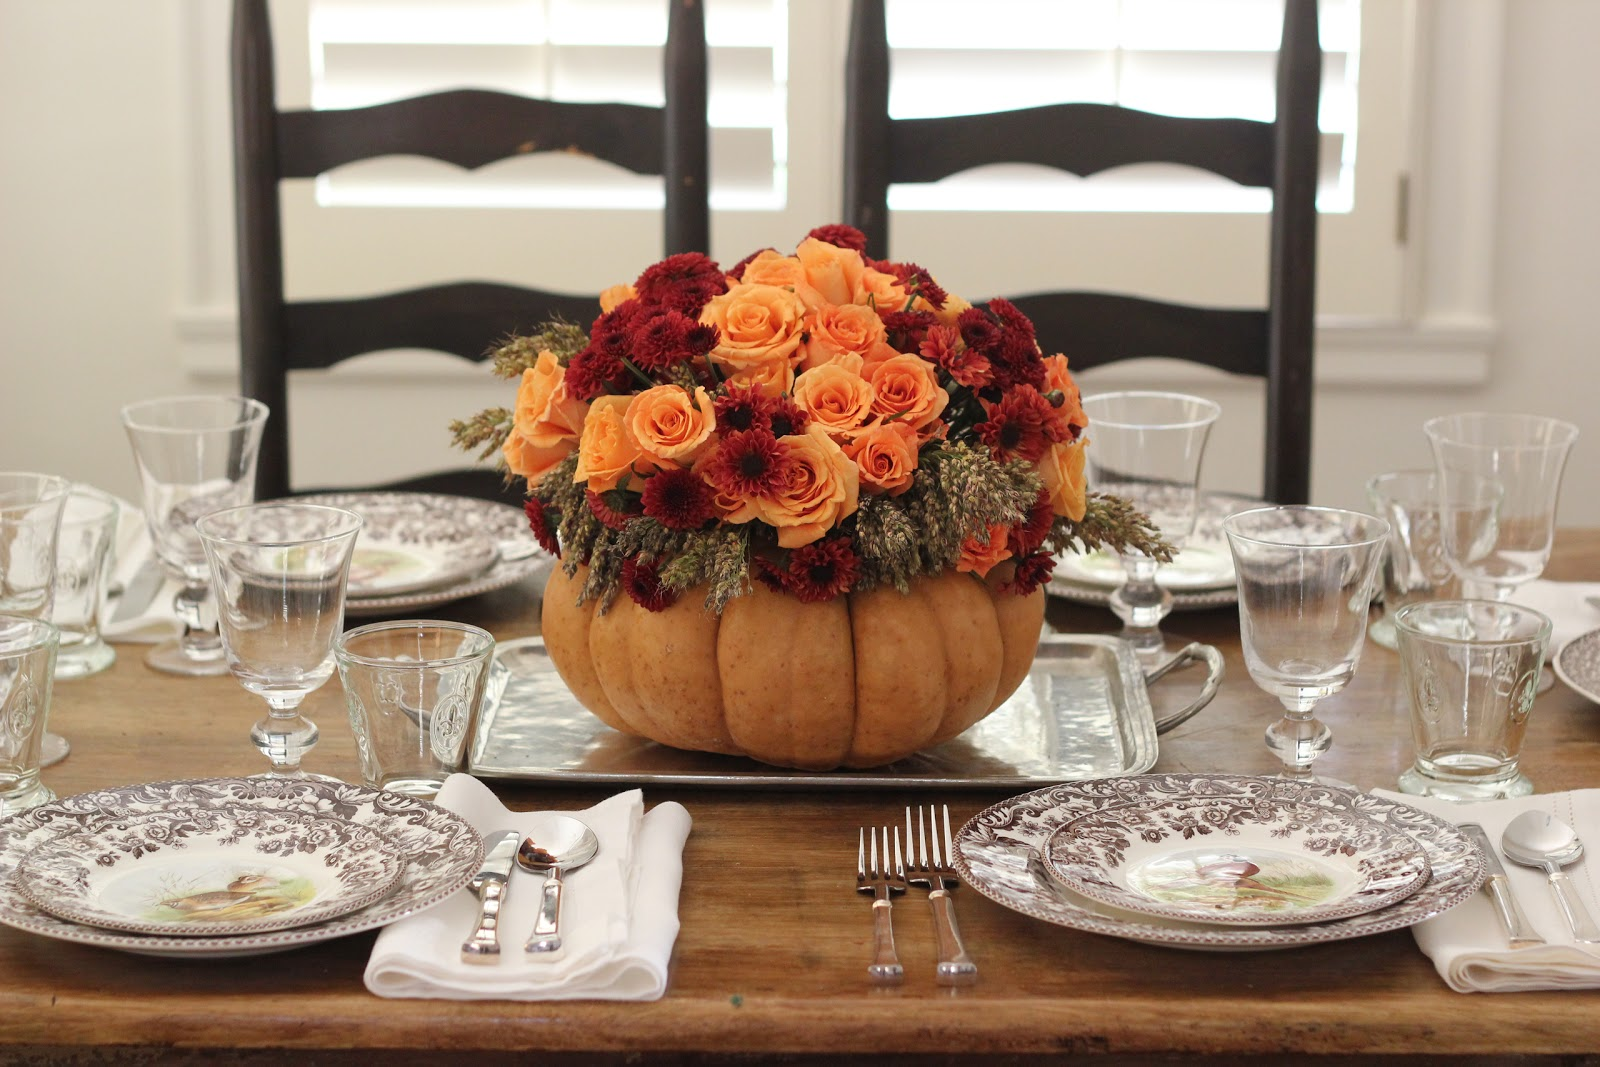 Jenny steffens hobick thanksgiving table setting diy for Table setting design